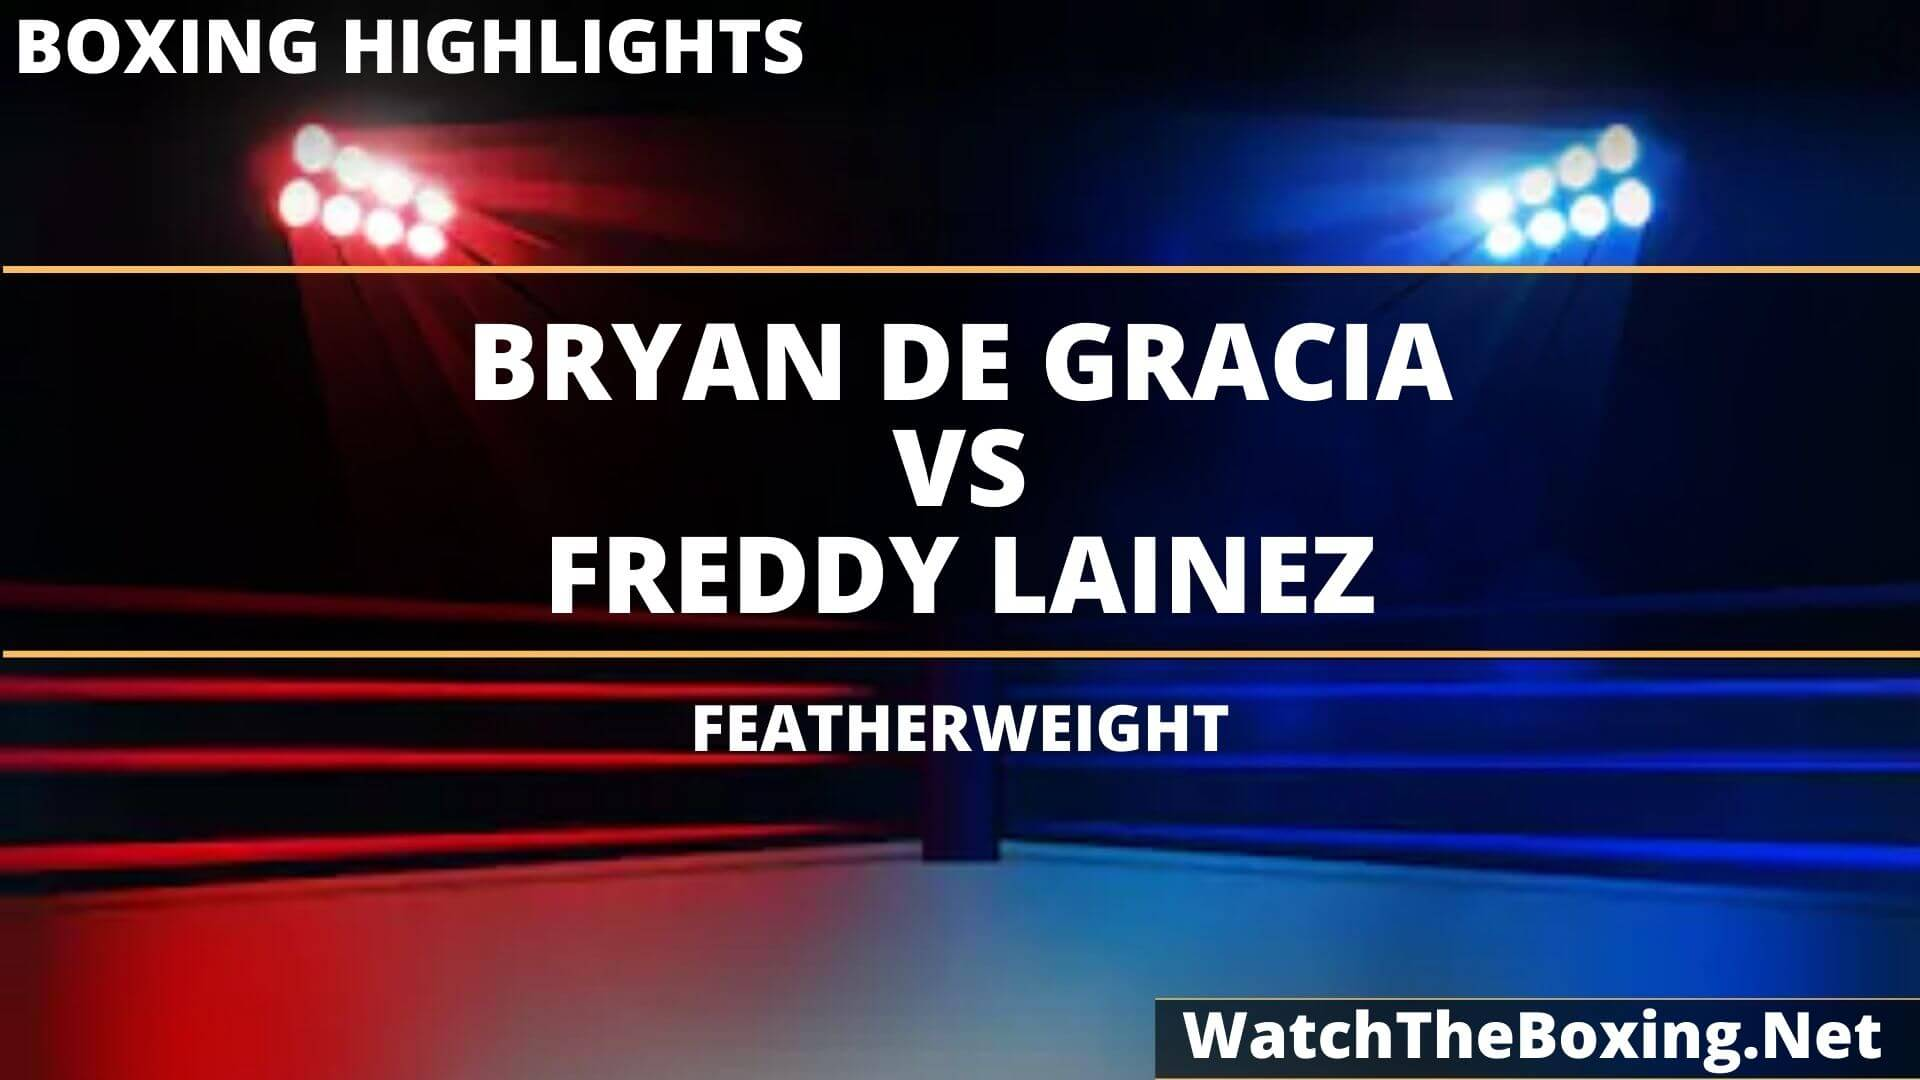 Bryan Gracia Vs Freddy Lainez Highlights 2020